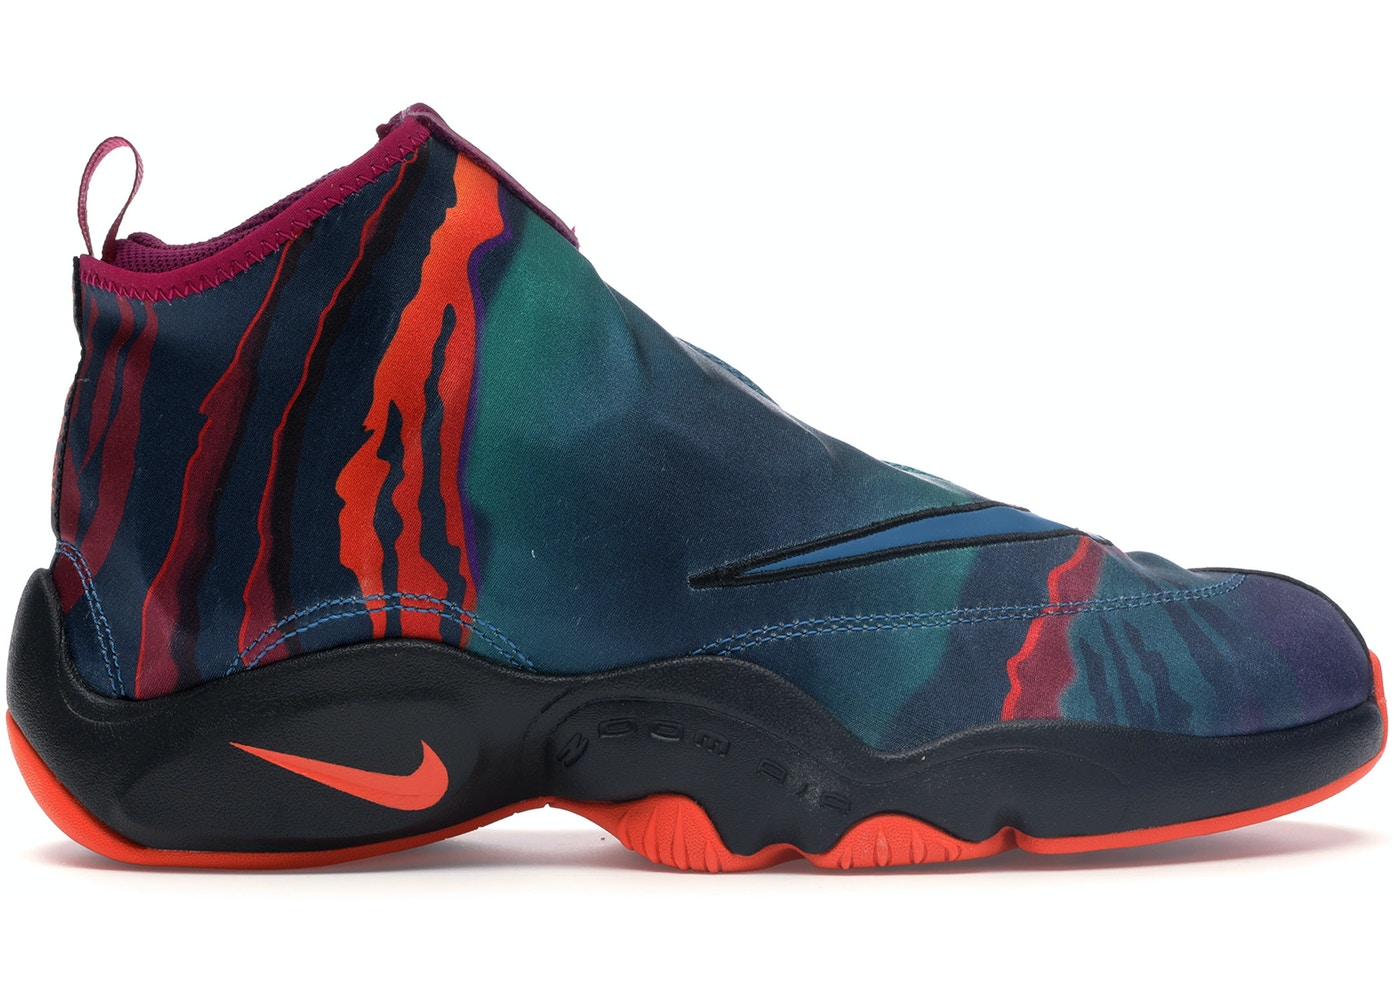 876d35c09d4d Nike Basketball Other Shoes - Volatility